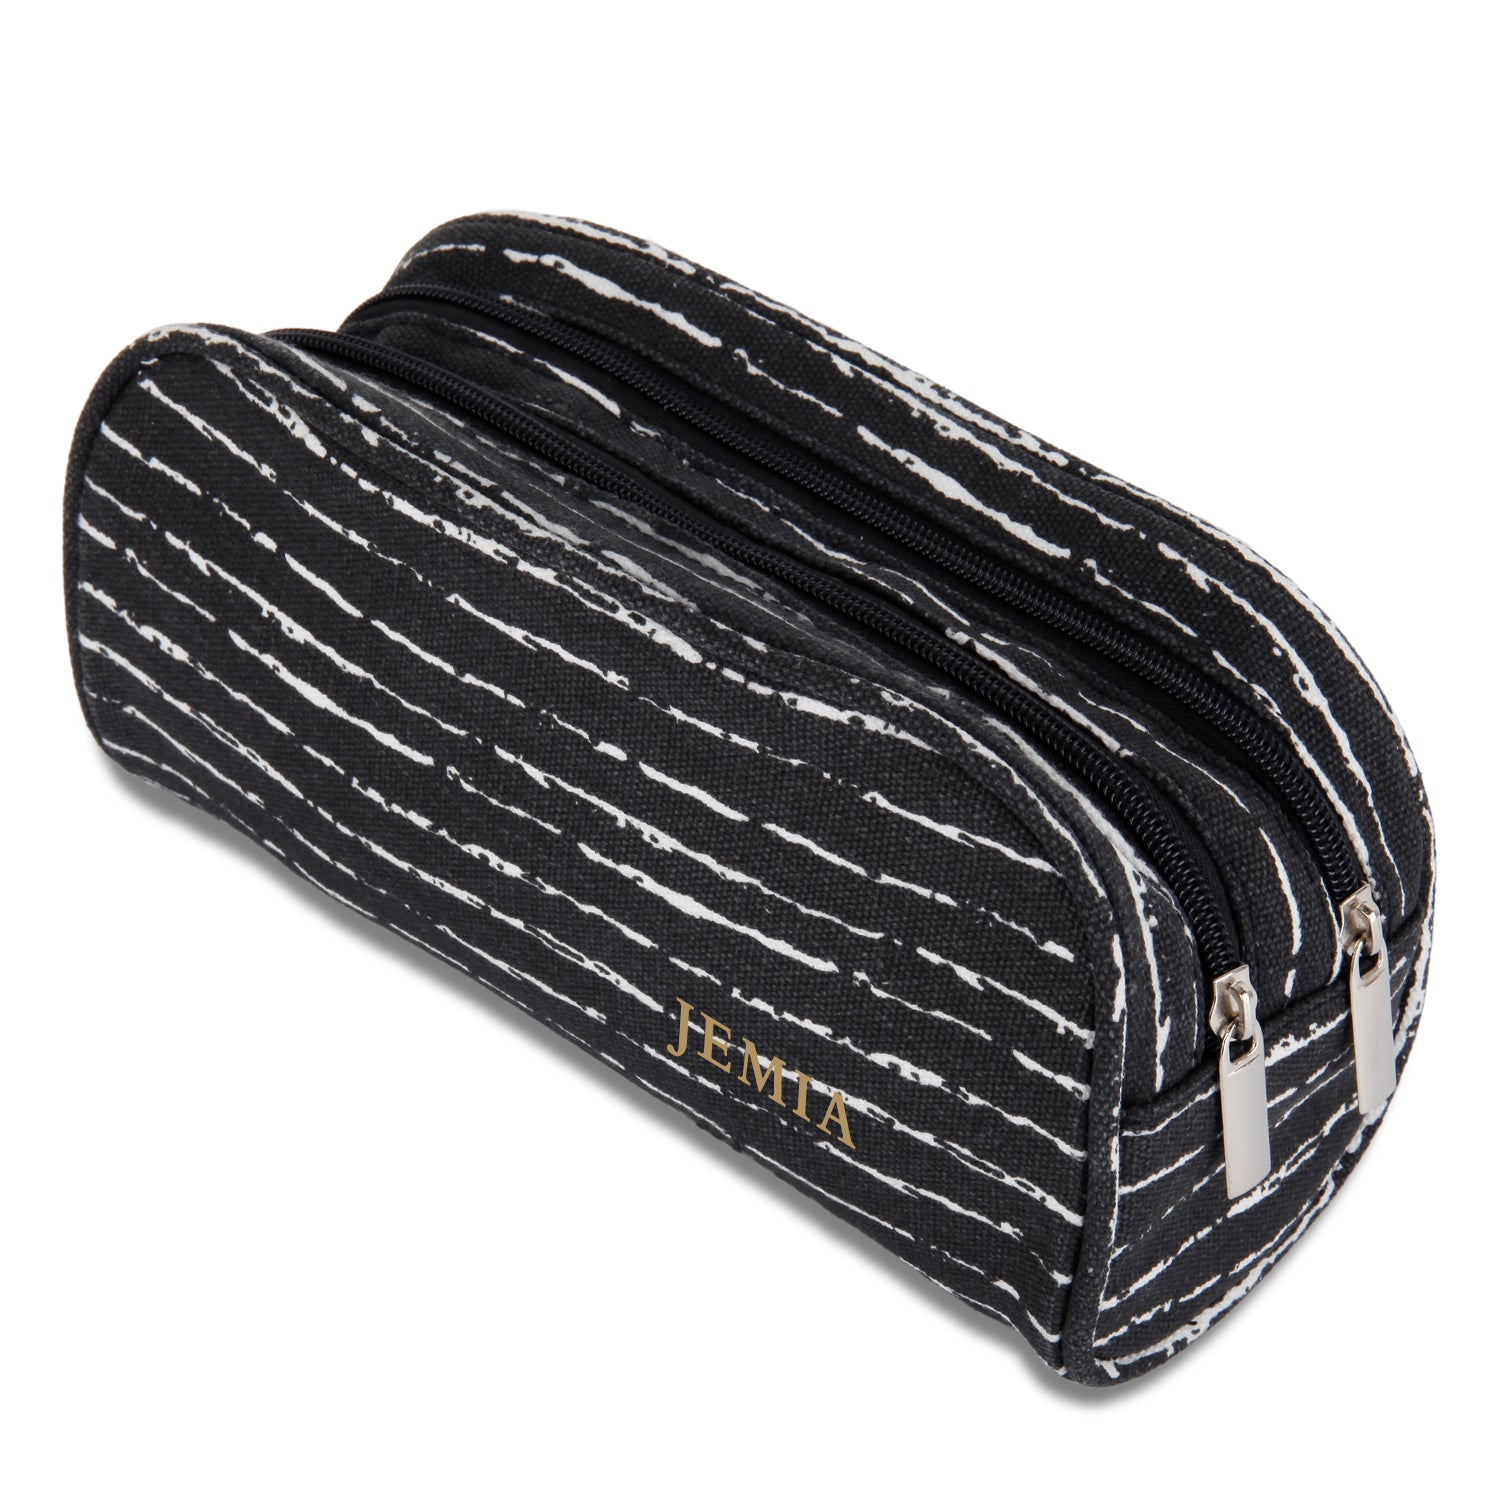 Dual Compartments Pencil Case with Mesh Pockets (Black with Random White, Canvas) - JEMIA Industrial Co. Ltd